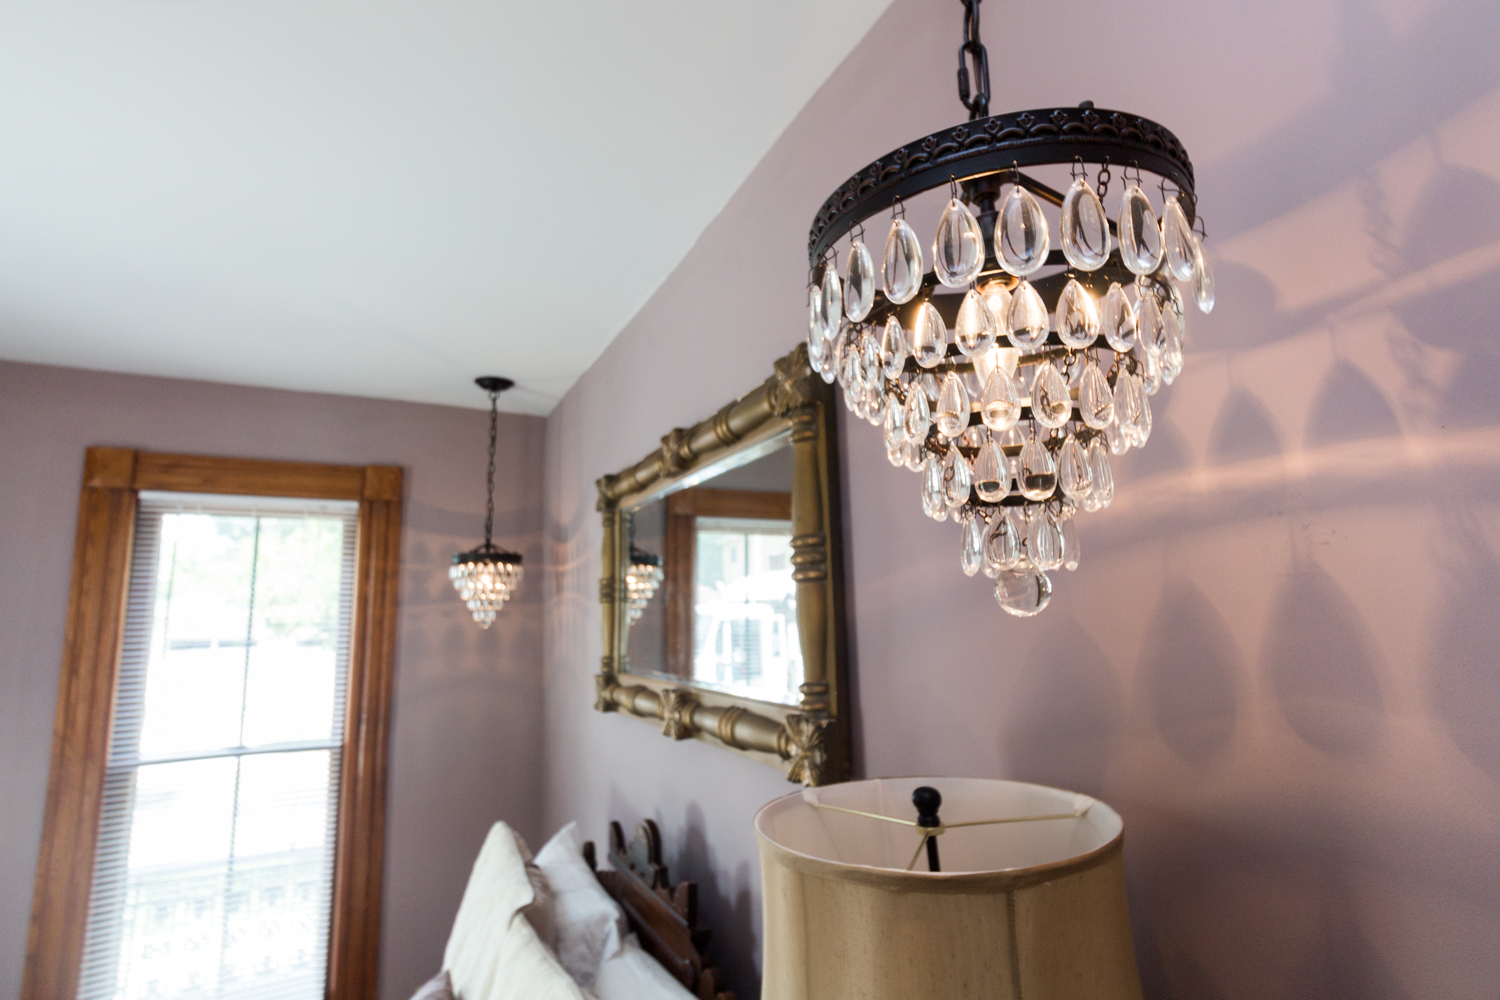 MSH-HistoricBuxton-pearl1roomchandelier.jpg